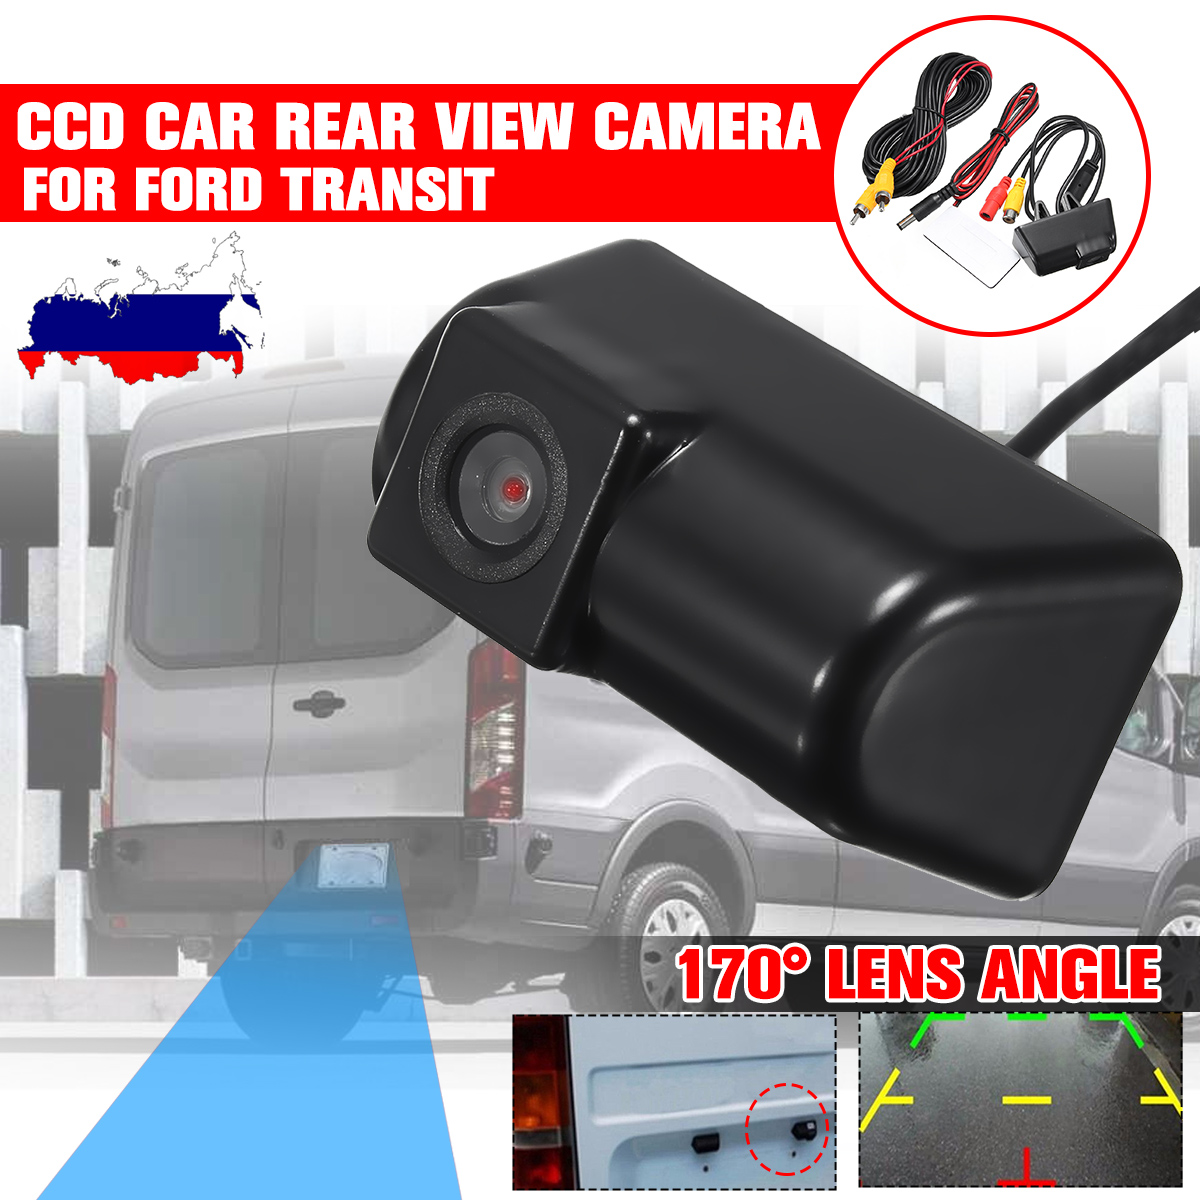 Waterproof Rear View Camera Night Vision 170° CCD Car Reversing Camera Kits For Ford Transit Connect Auto Parking Accessories